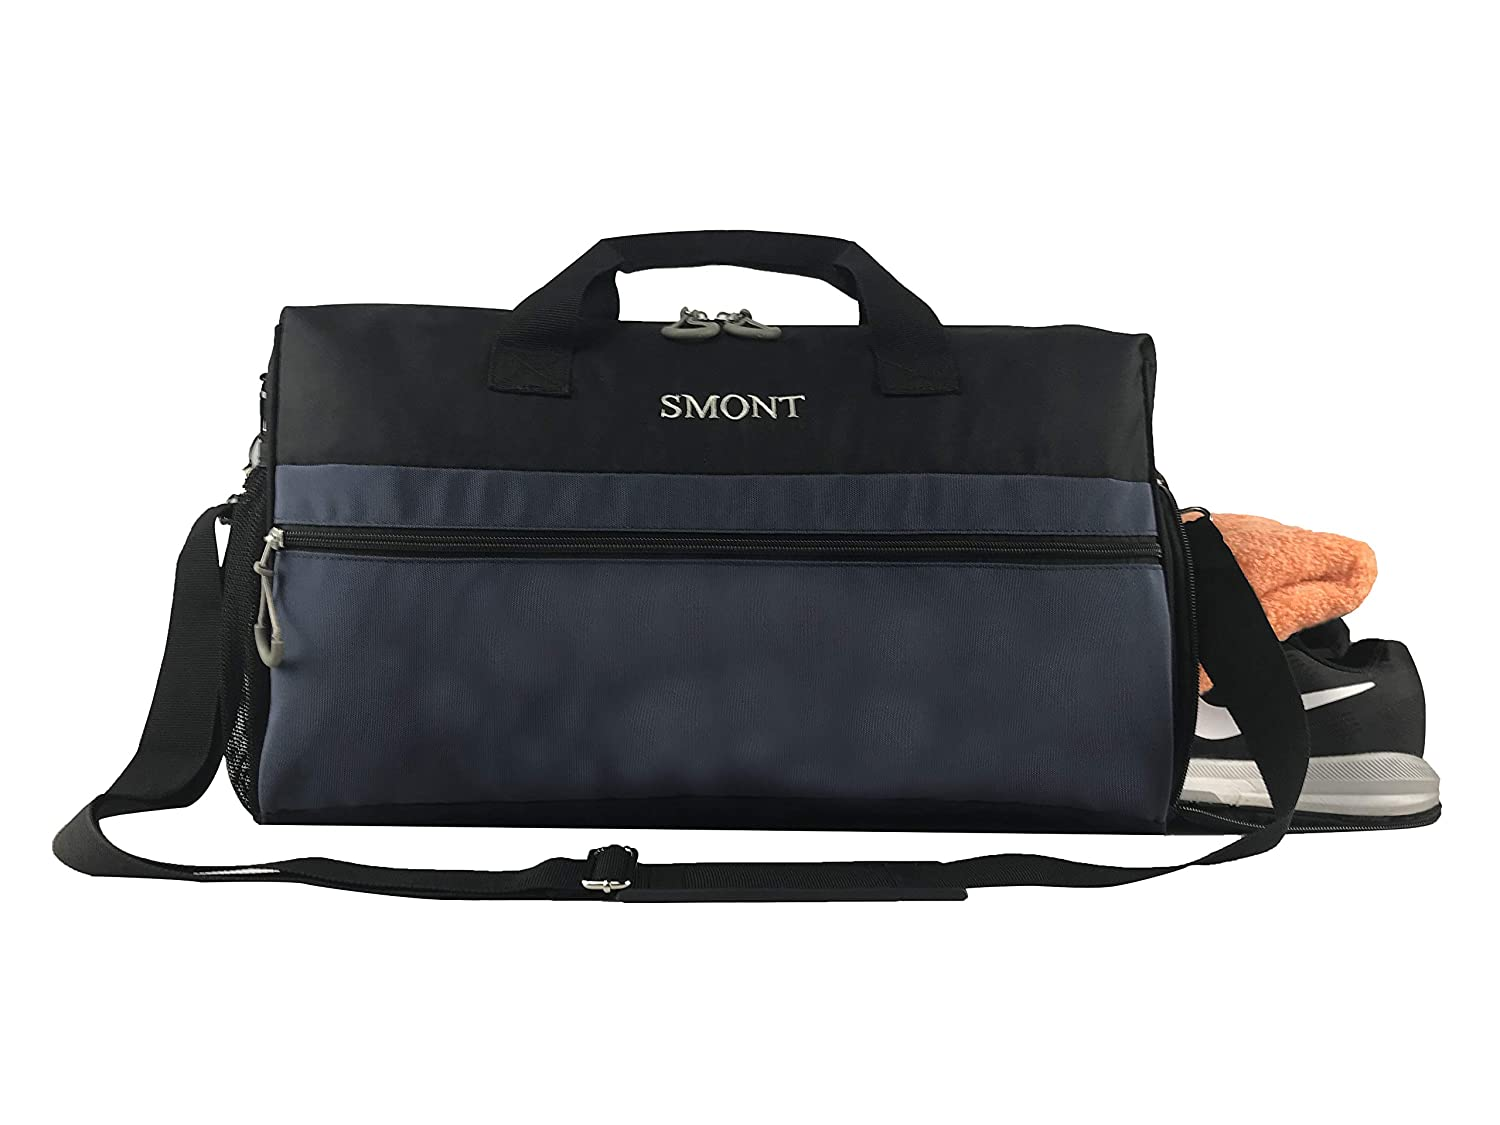 Amazon.com  SMONT Sports Gym Bag with Wet Pocket   Shoes Compartment Travel  Duffel Bag for Men and Women Black  SunmountDirect 1d295909e4